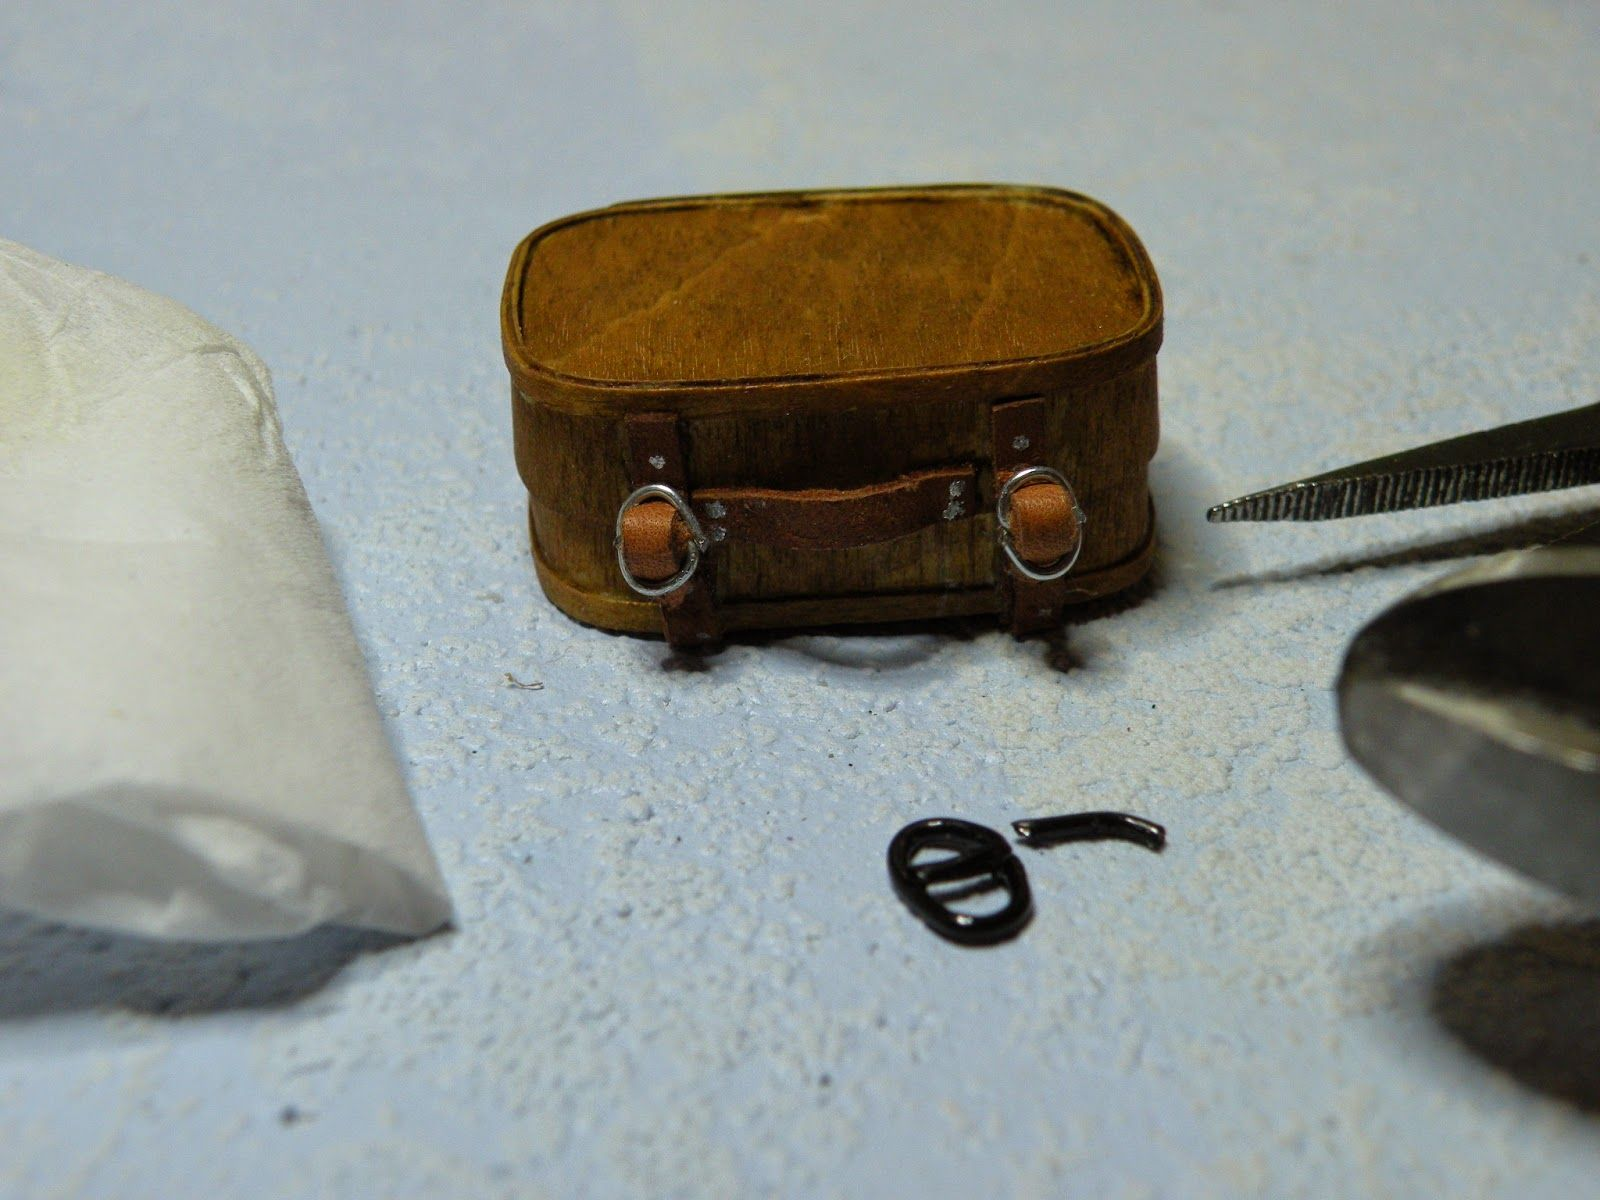 SMALL HOUSE, BIG WORLD: tiny buckles for belts, bags, etc. from paper clips or any other hard wire...clever!